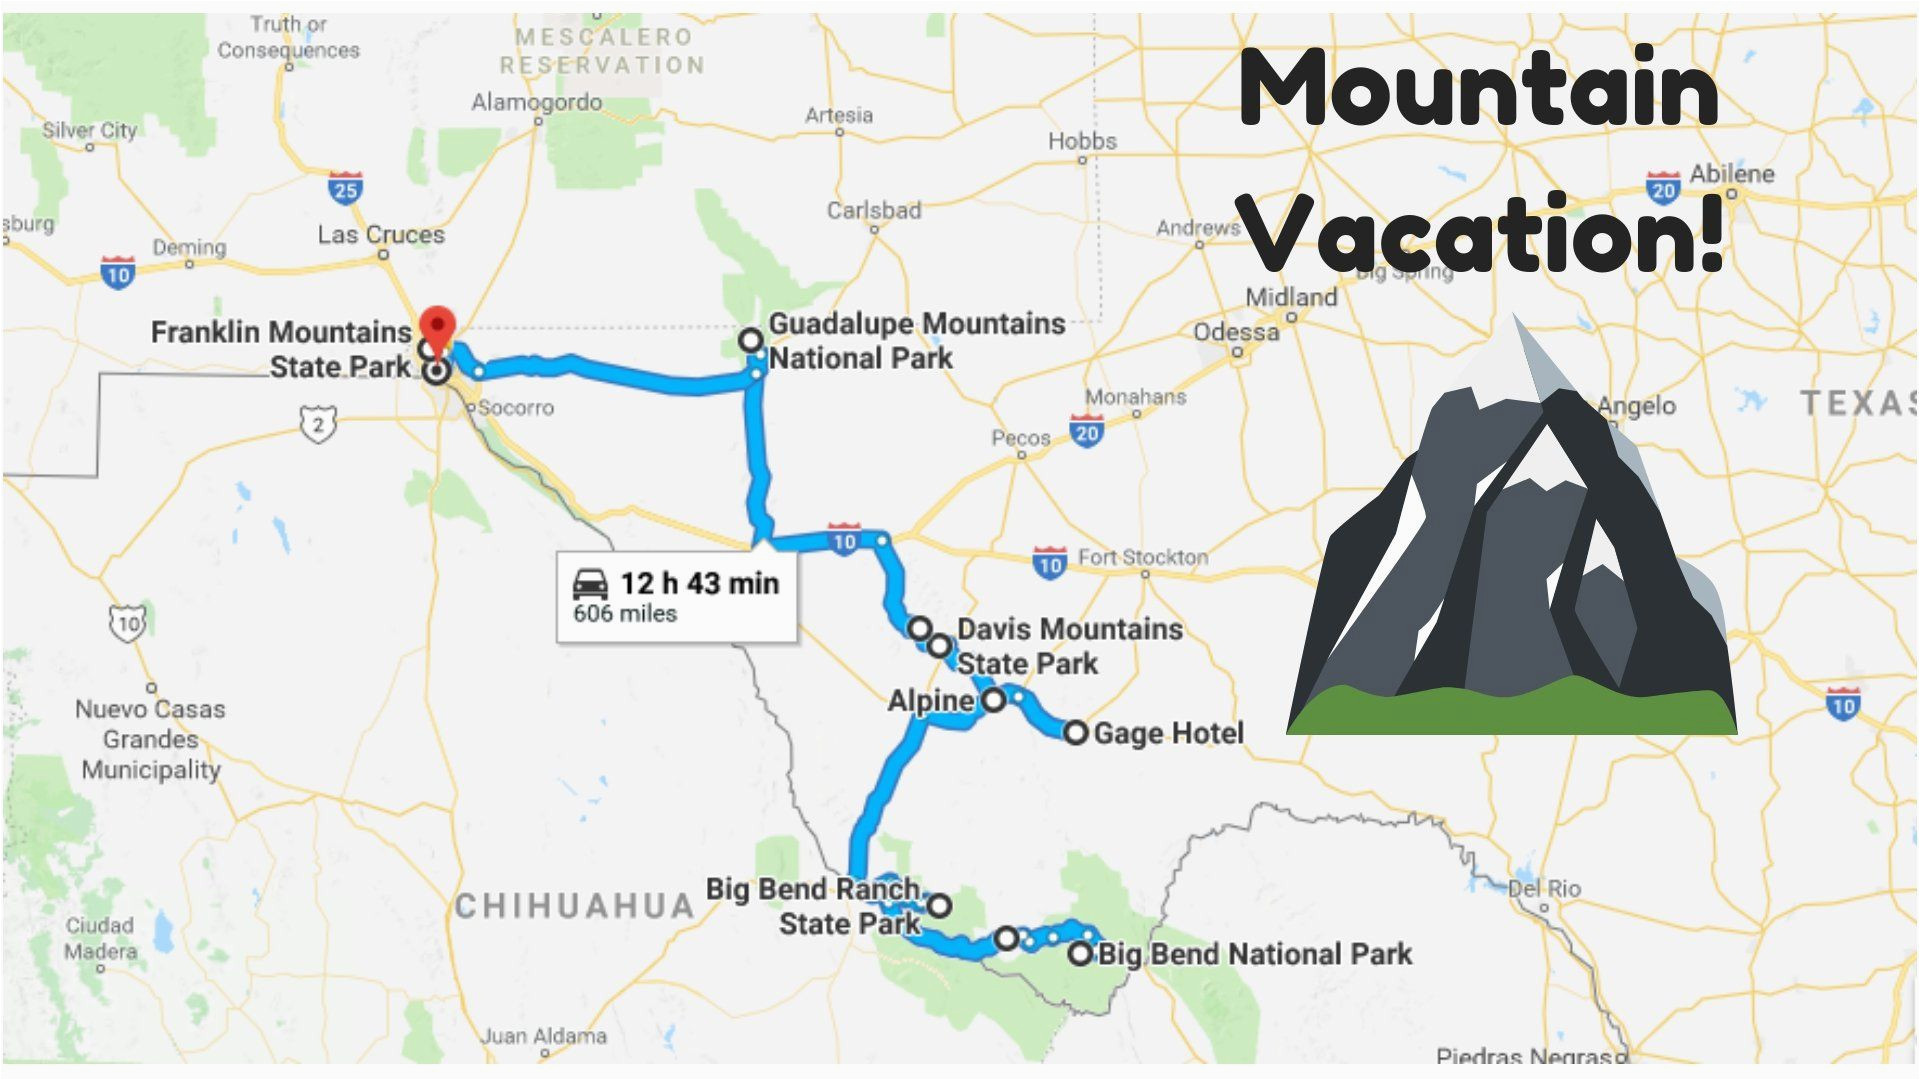 everyone from texas should take this awesome mountain vacation